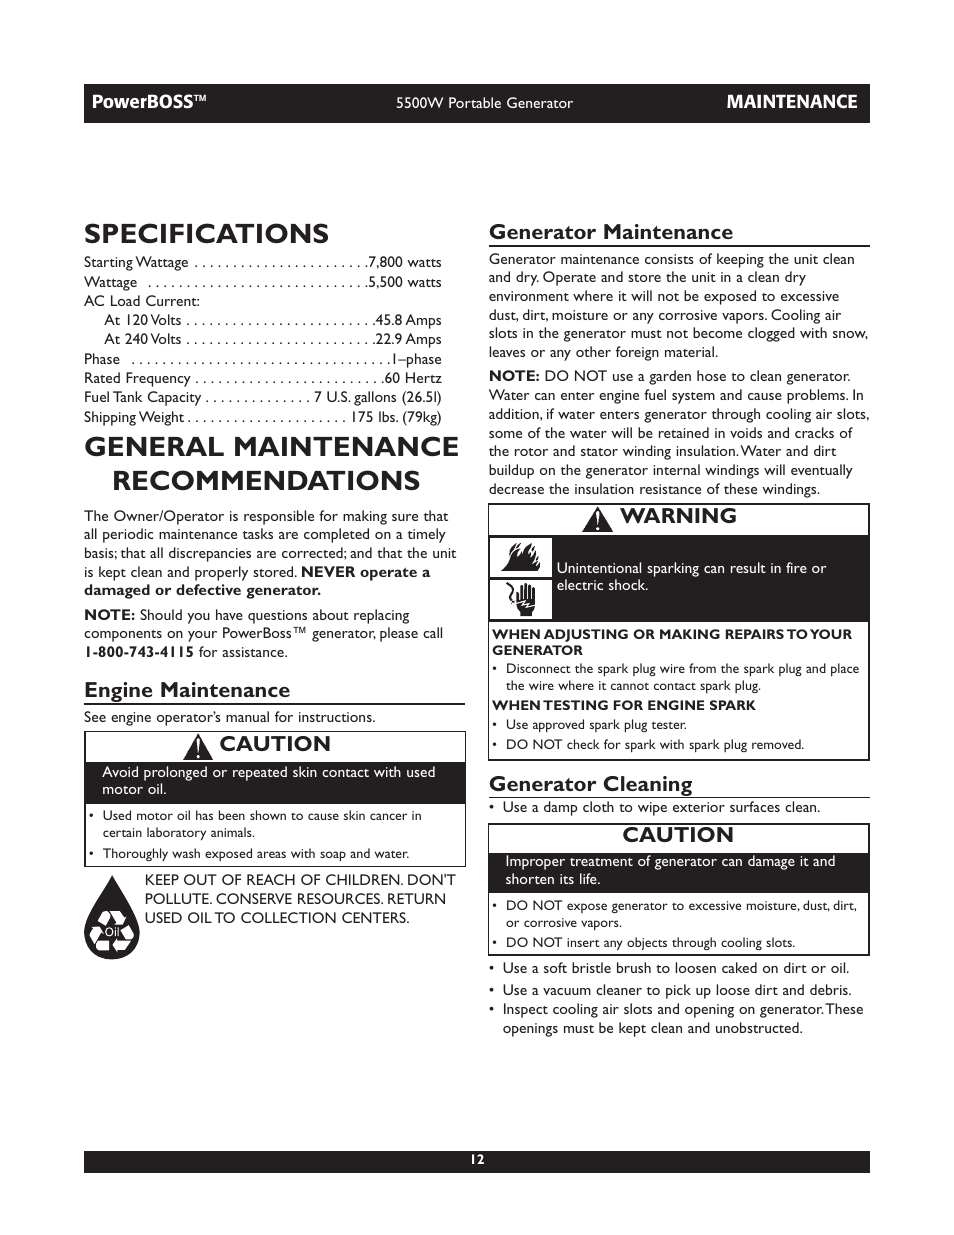 Specifications General Maintenance Recommendations Engine Briggs 26 Stratton Diagram 030255 User Manual Page 12 28